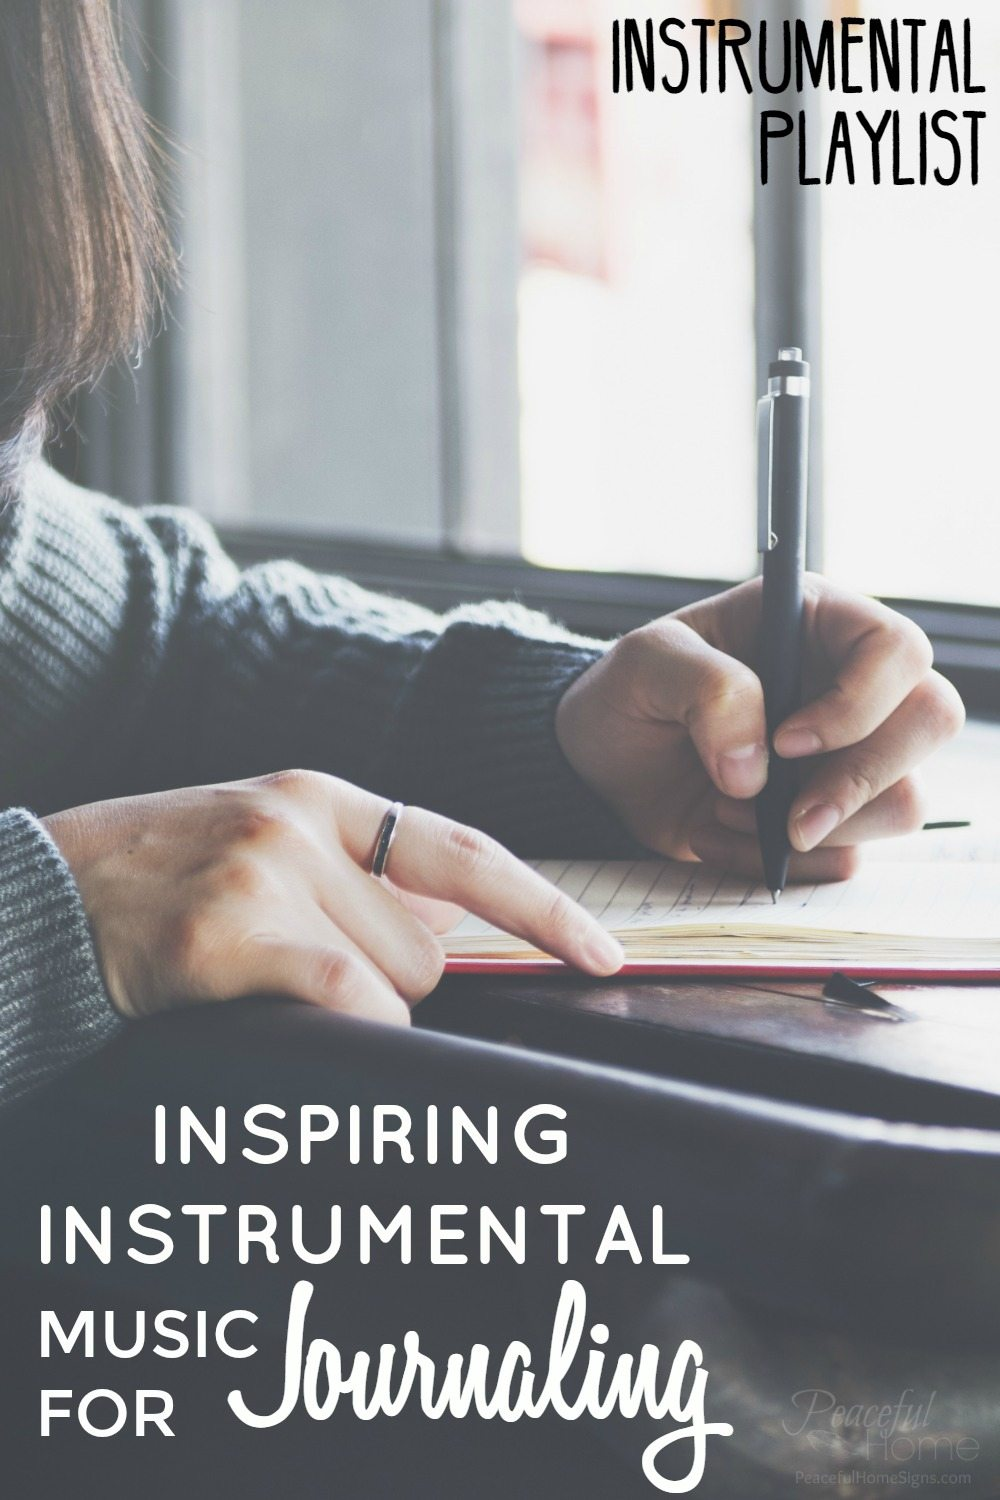 Journaling Playlist | Journal Time | Instrumental Playlist | Relaxing instrumental | Inspiring Music | Music to write to